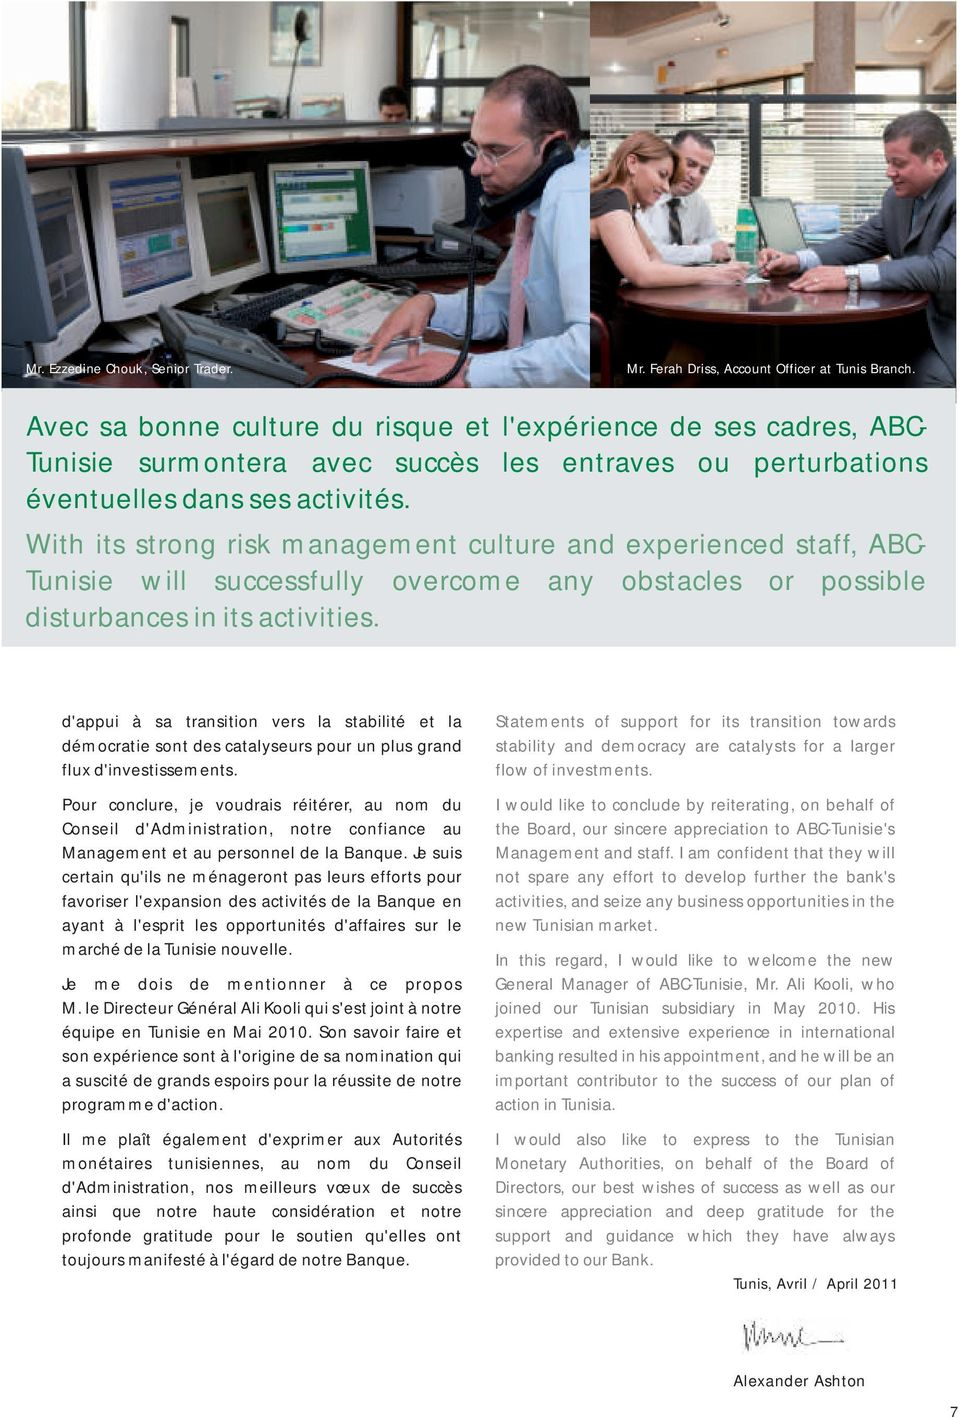 With its rong risk management culture and experienced aff, ABC- Tunisie will successfully overcome any obacles or possible diurbances in its activities.